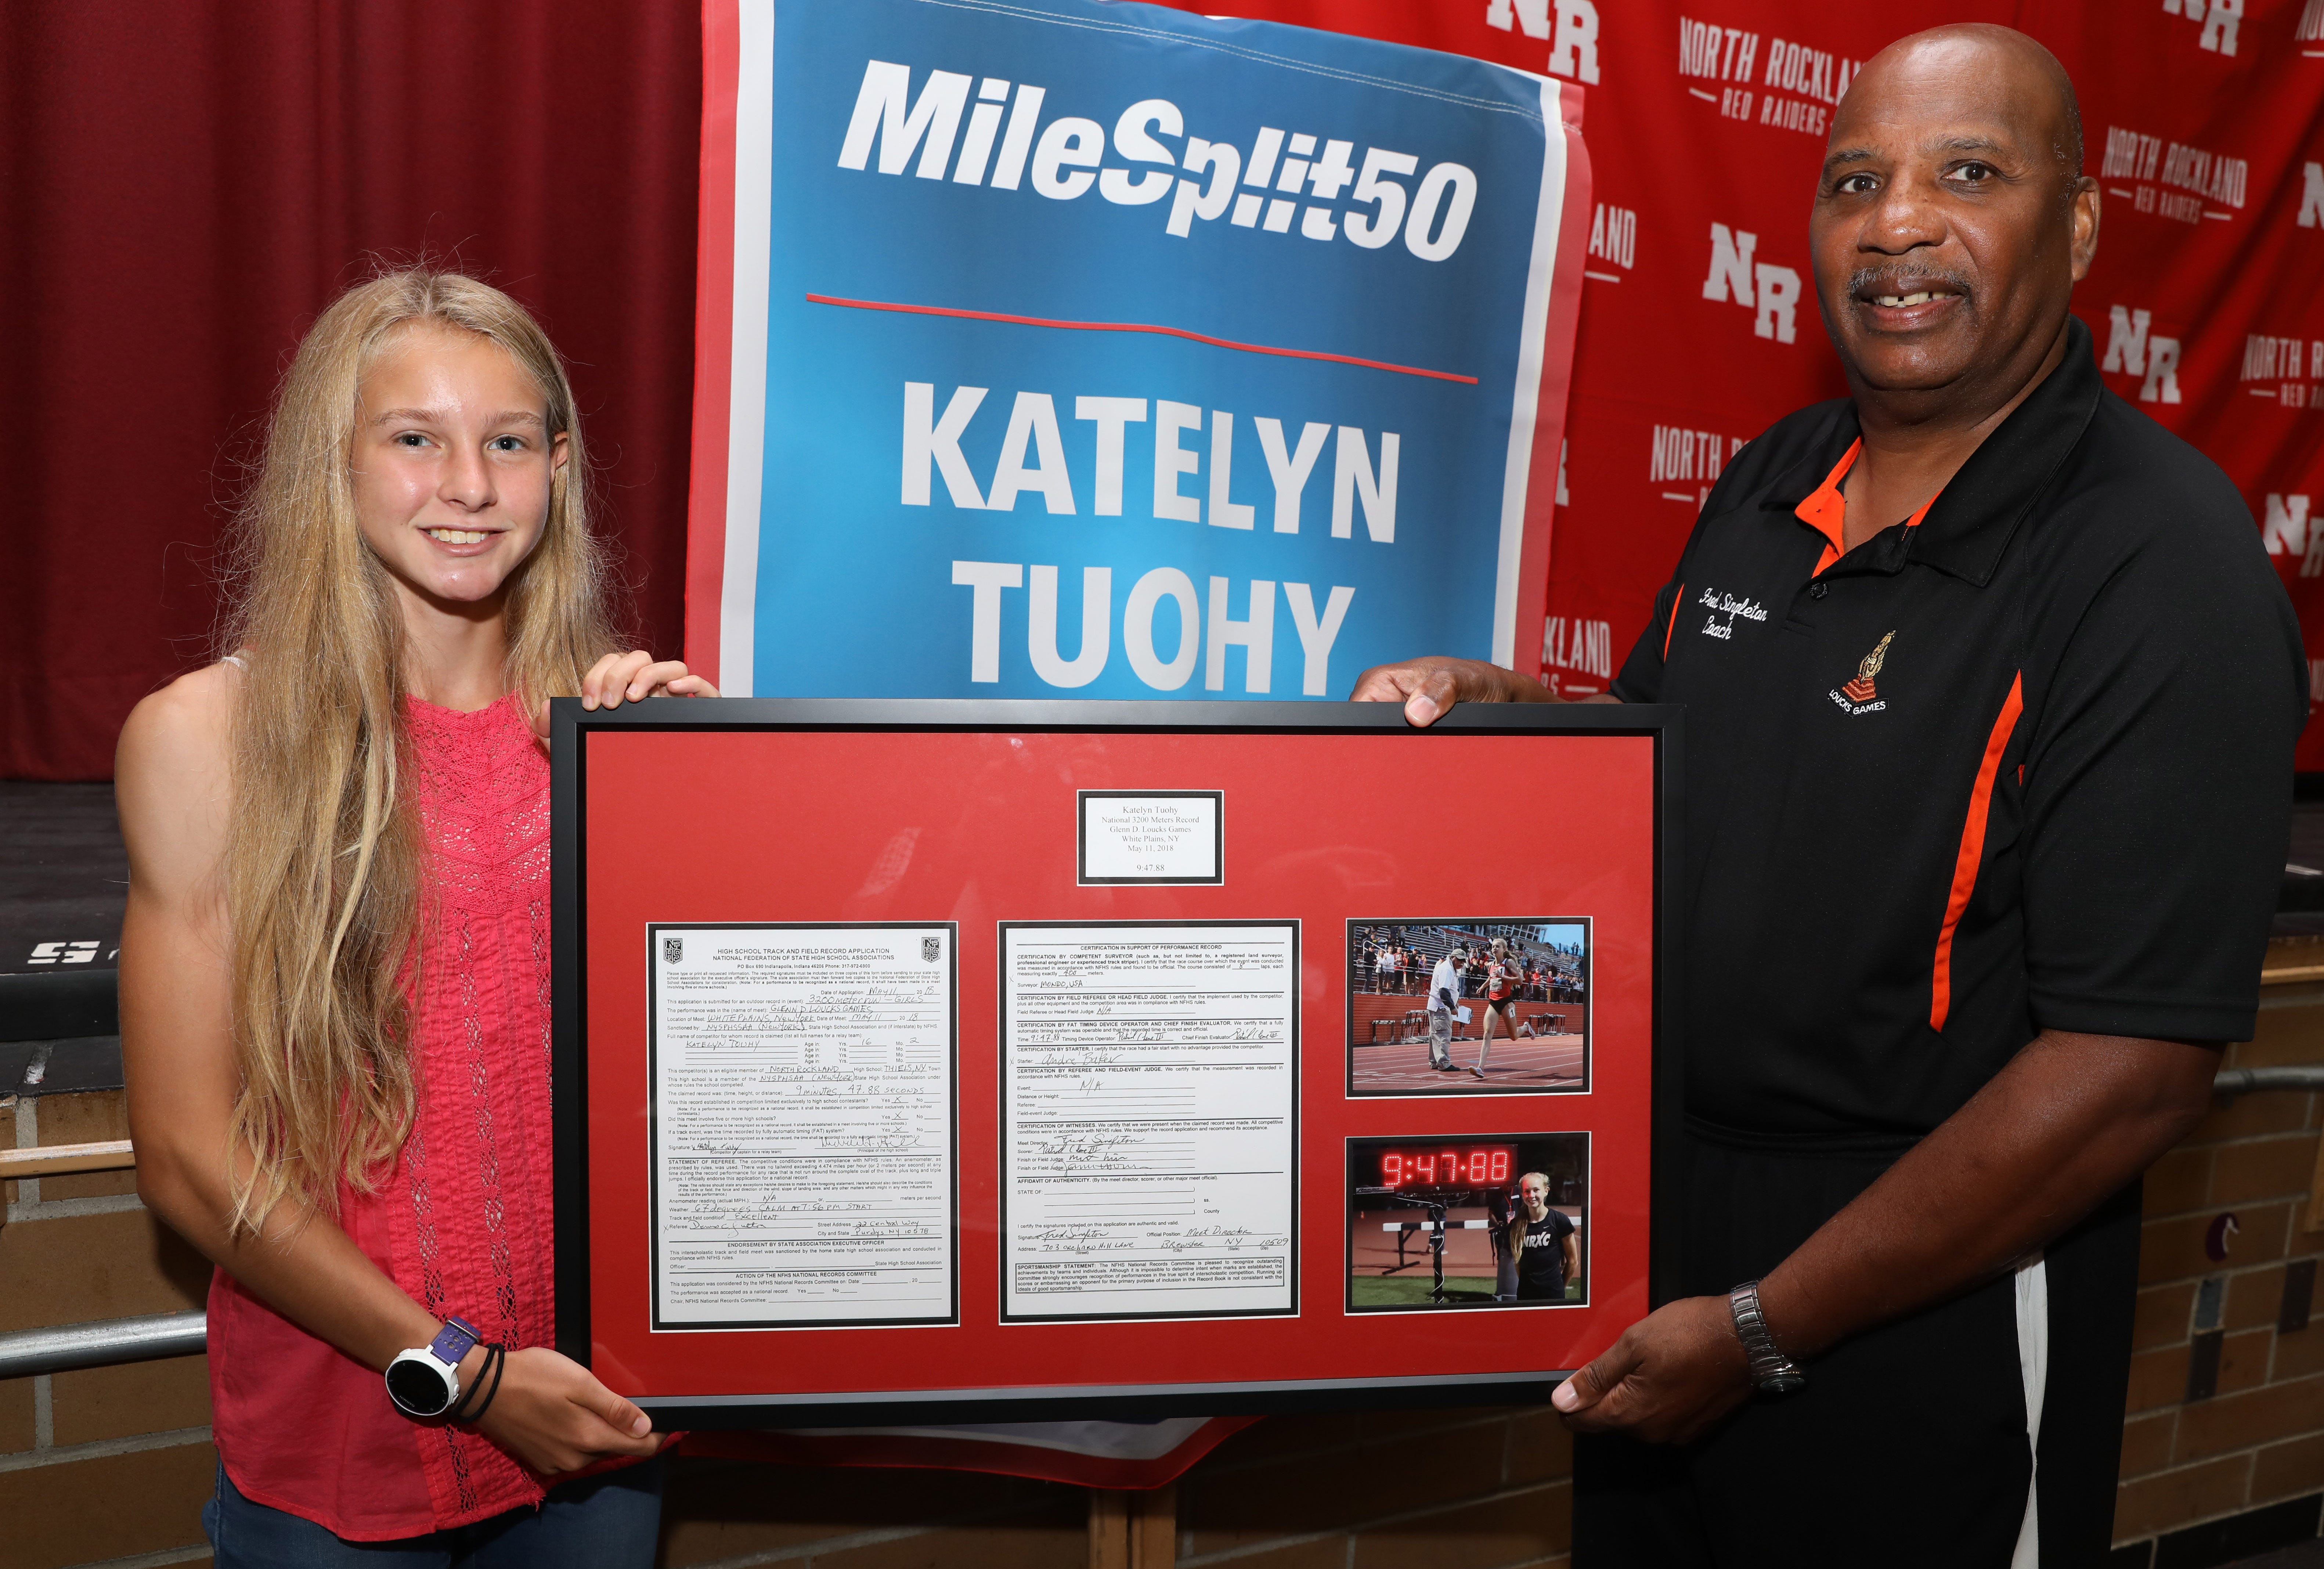 Loucks Games Honor Tuohy For Setting National 3200 Meter Record There